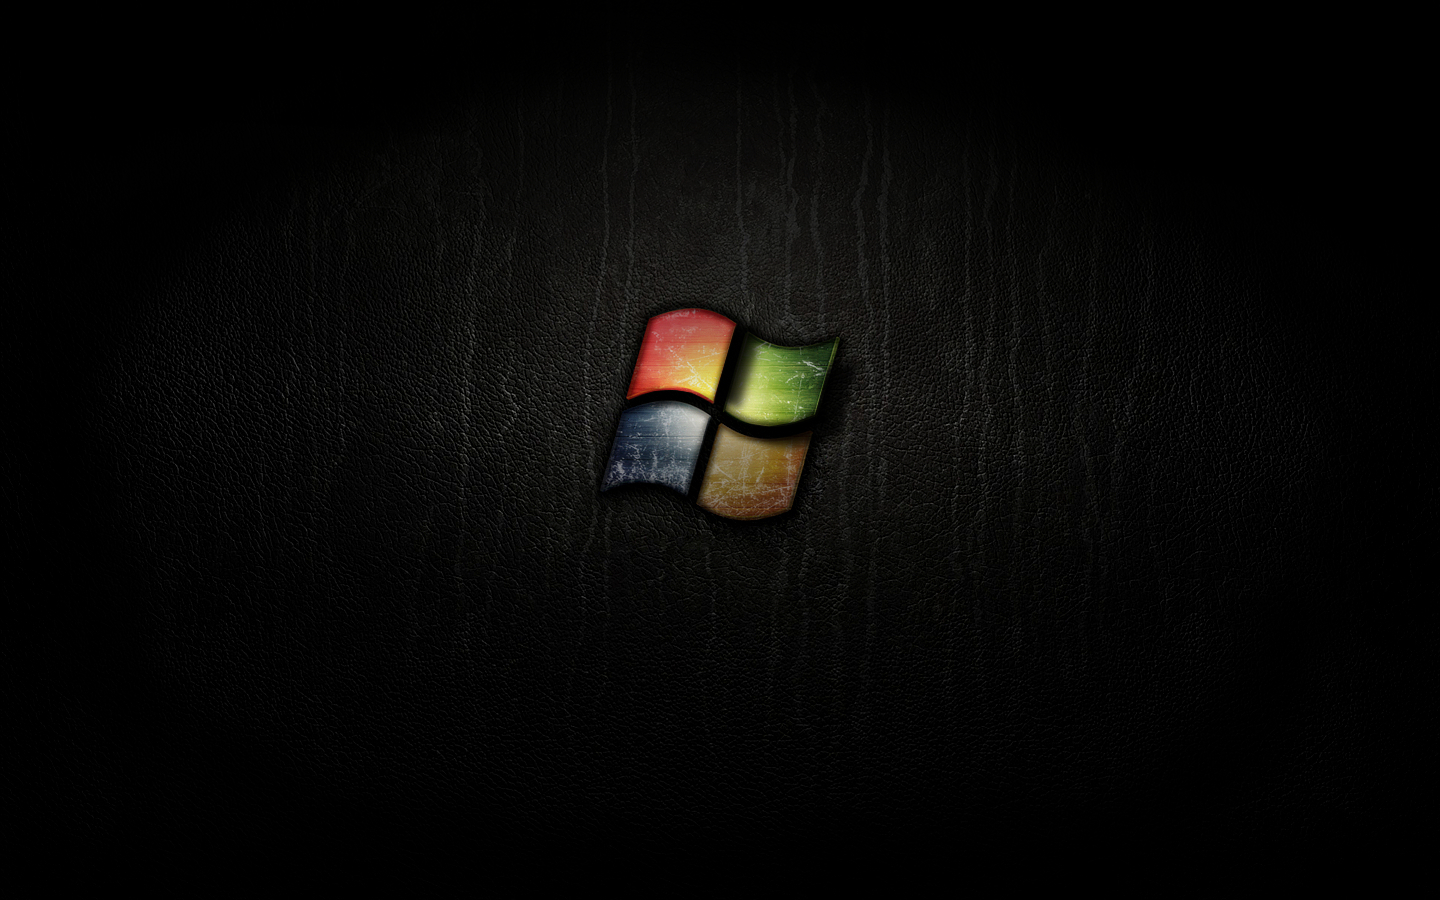 Windows 7 black wallpaper